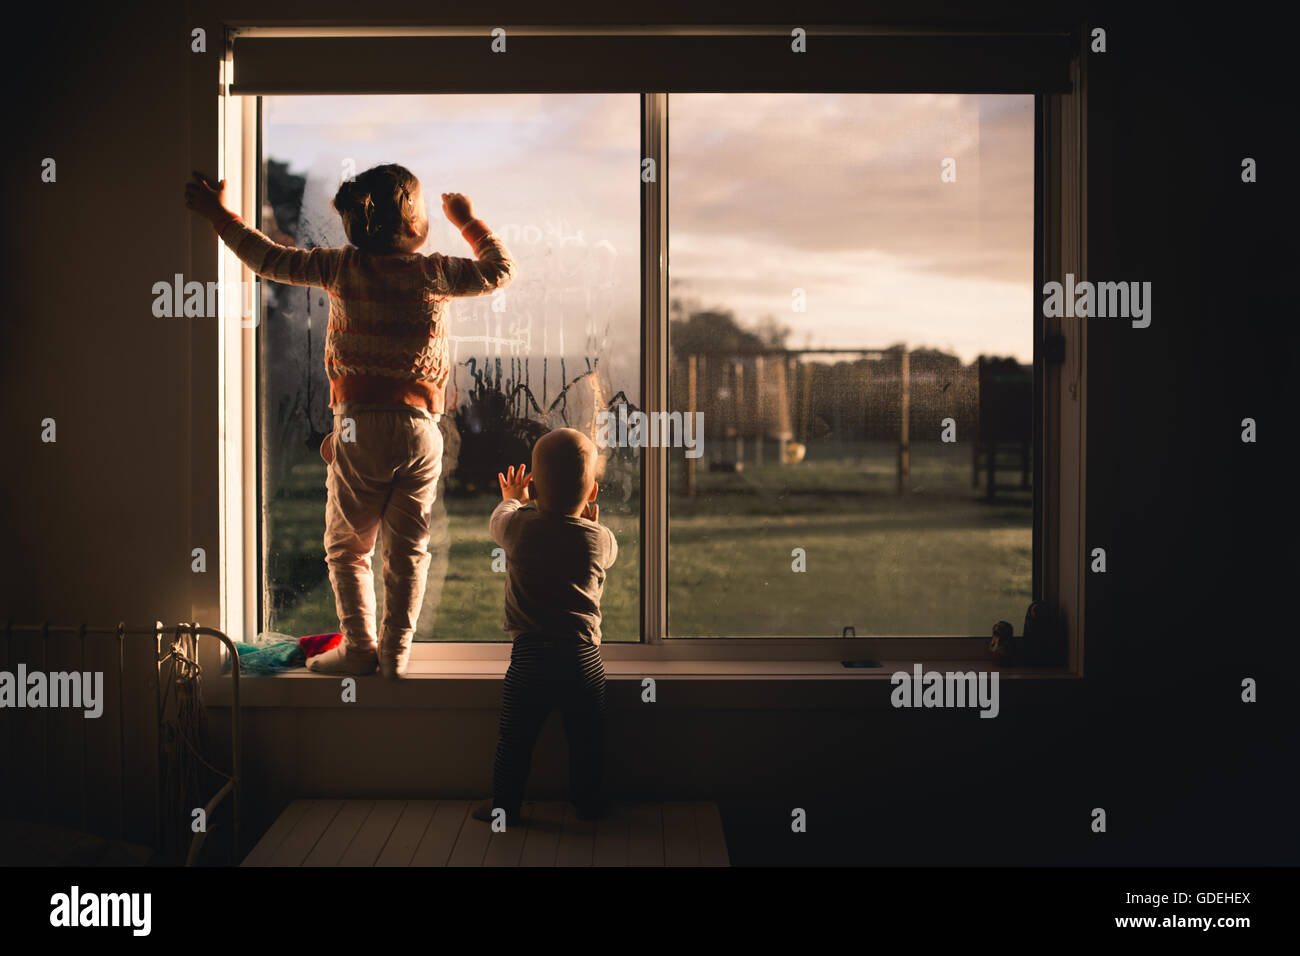 Boy and girl drawing on the window in morning condensation - Stock Image